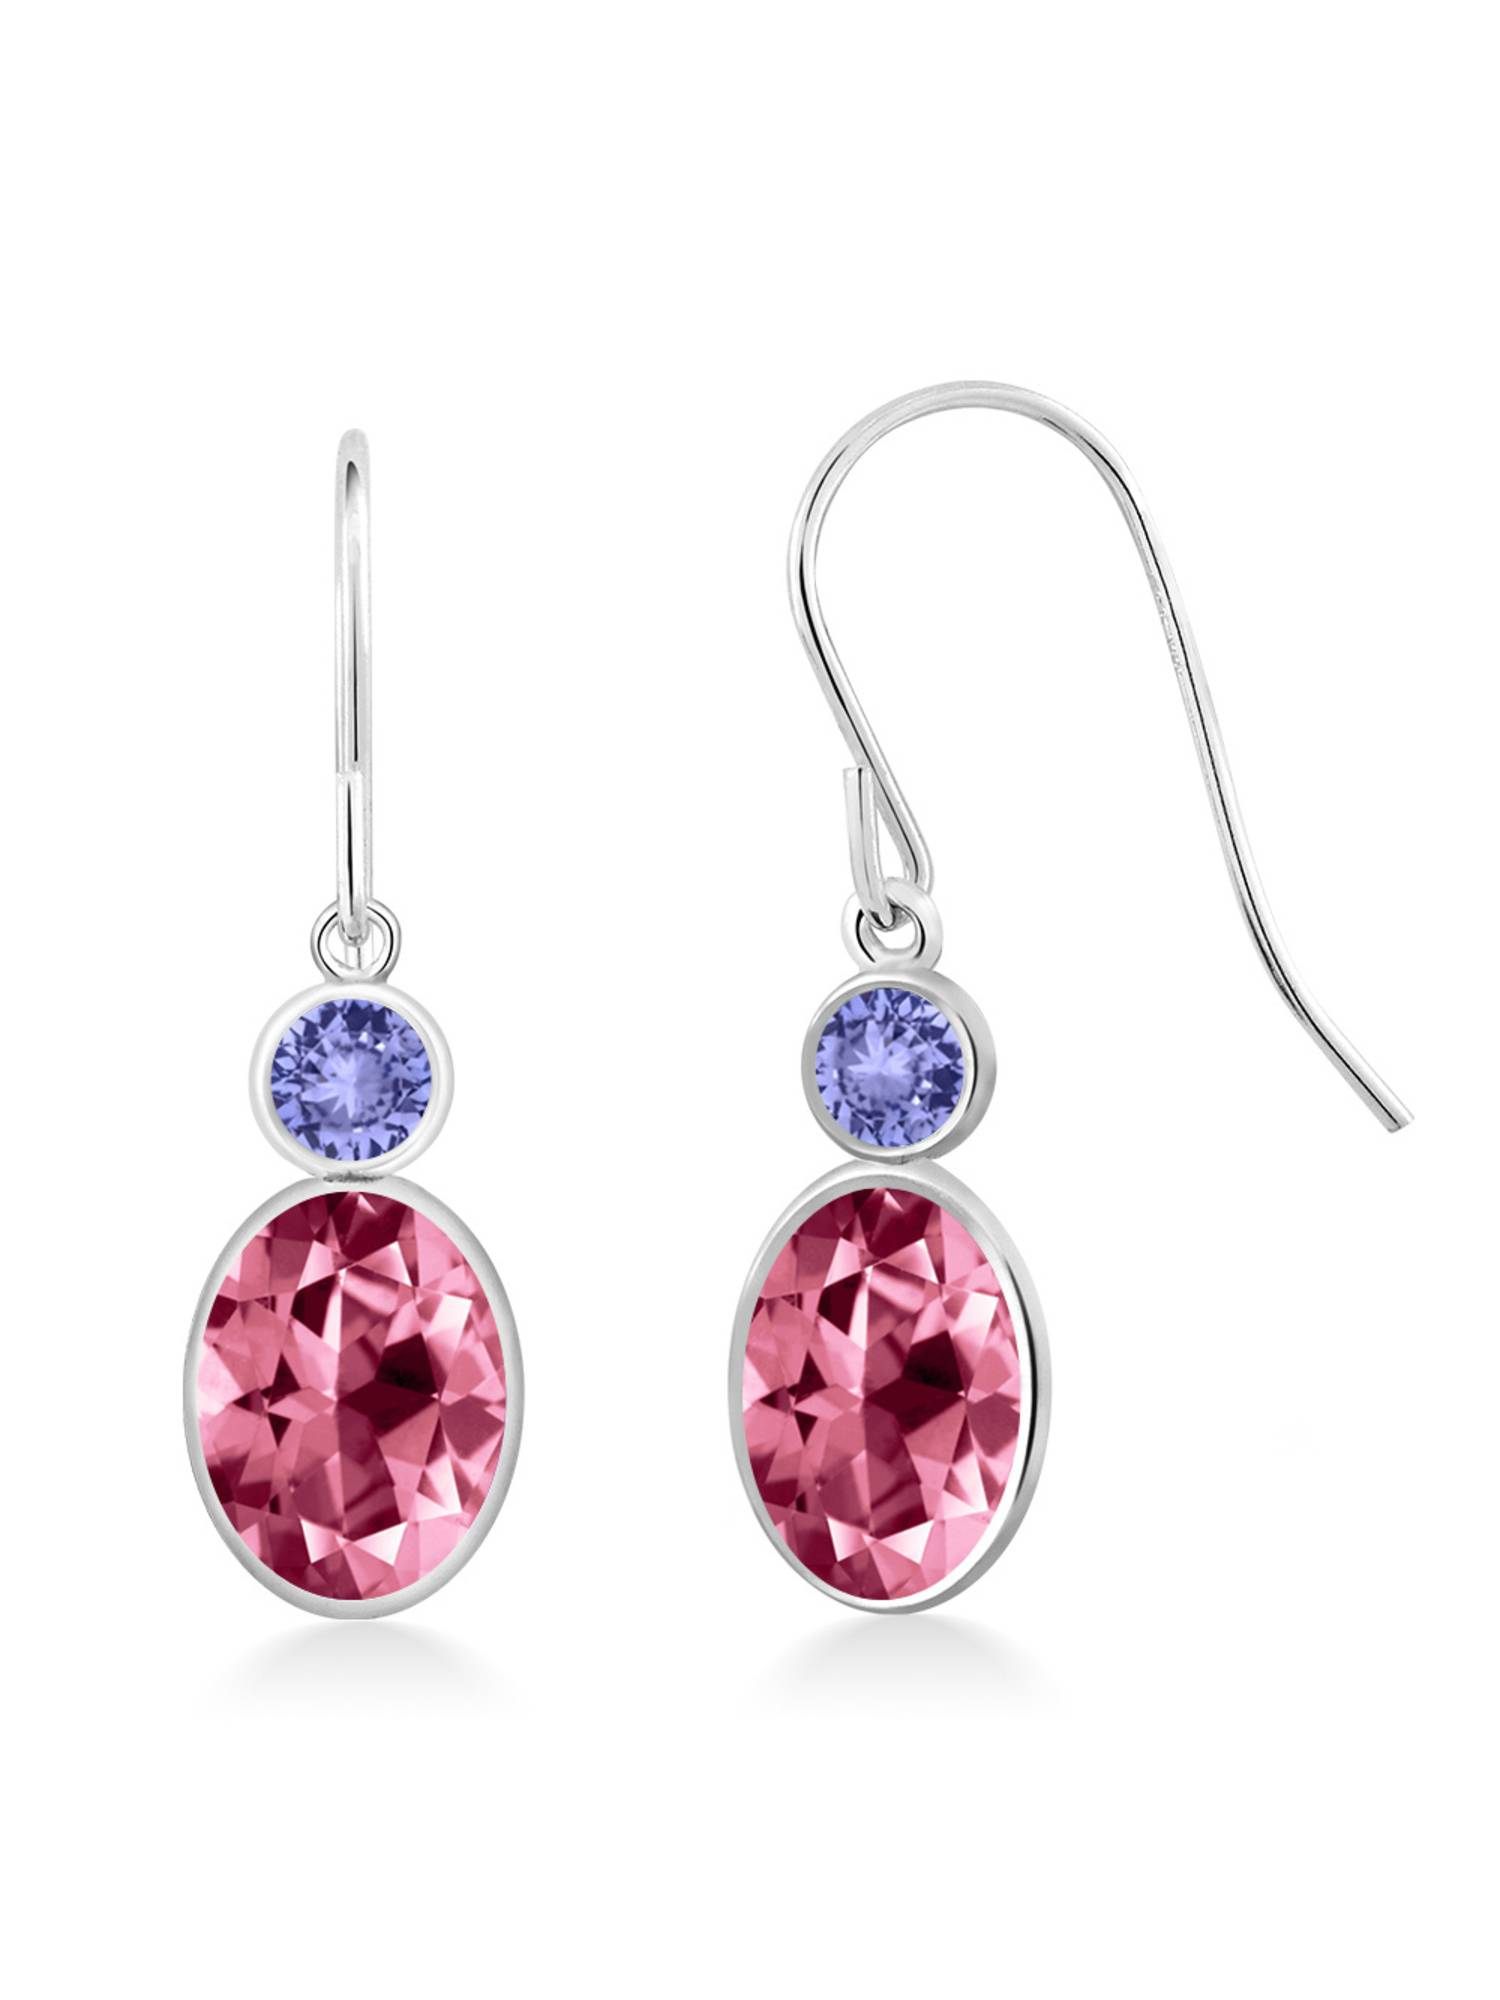 14K White Gold Earrings Tanzanite Set with Oval Pink Topaz from Swarovski by